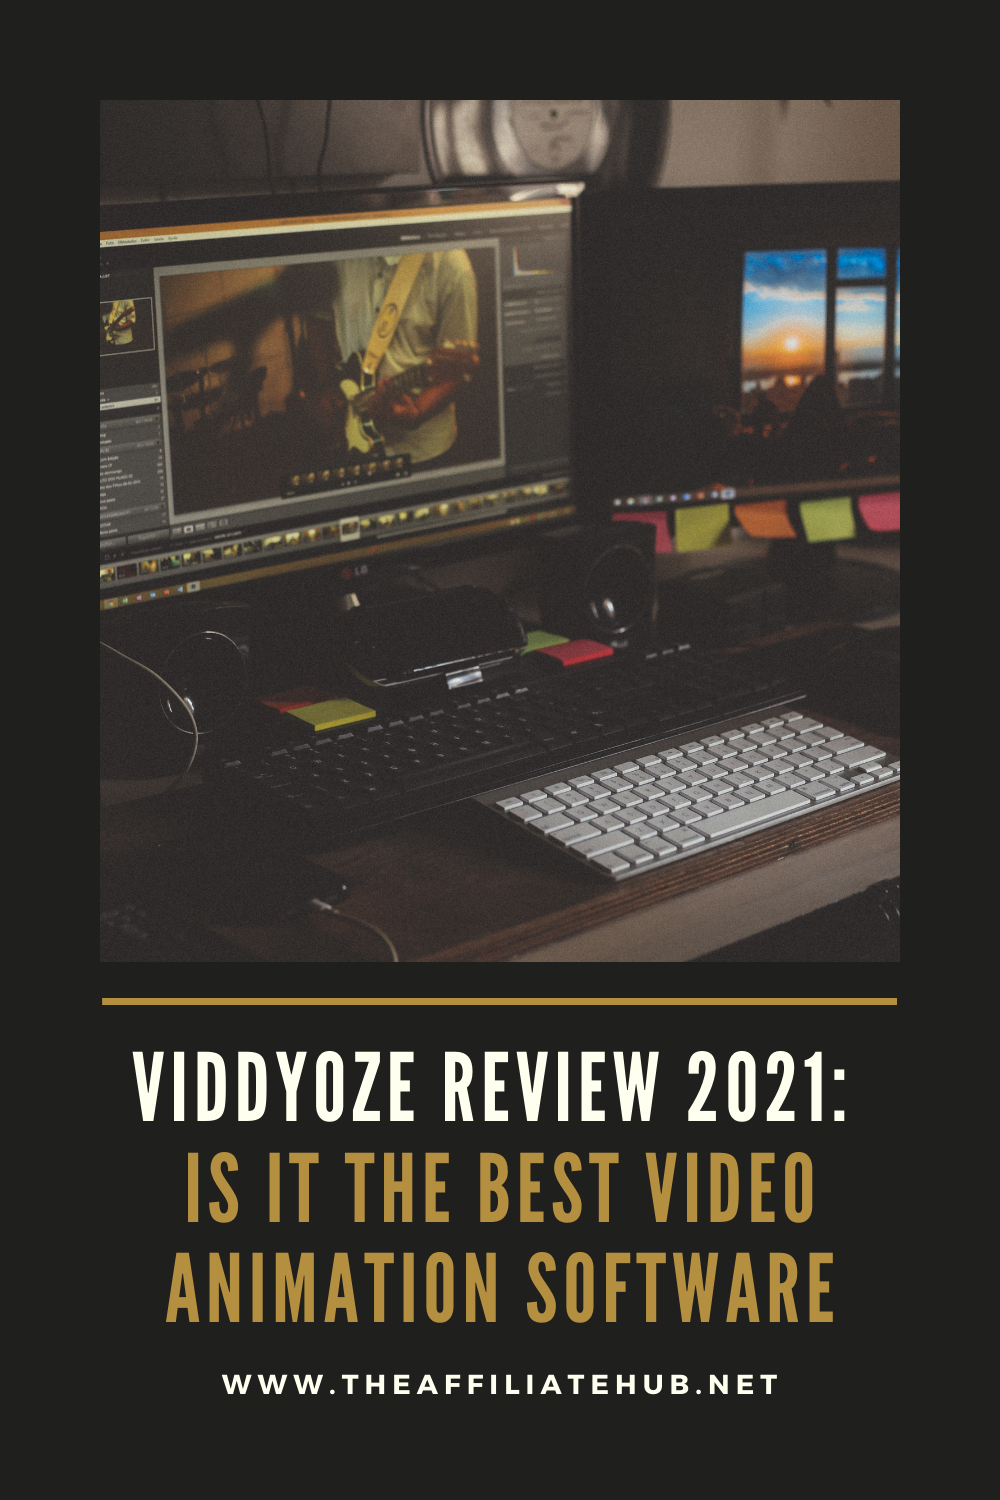 Create the Perfect Fashion Palette - Viddyoze Review 2021: Is It The Best Video Animation Software?